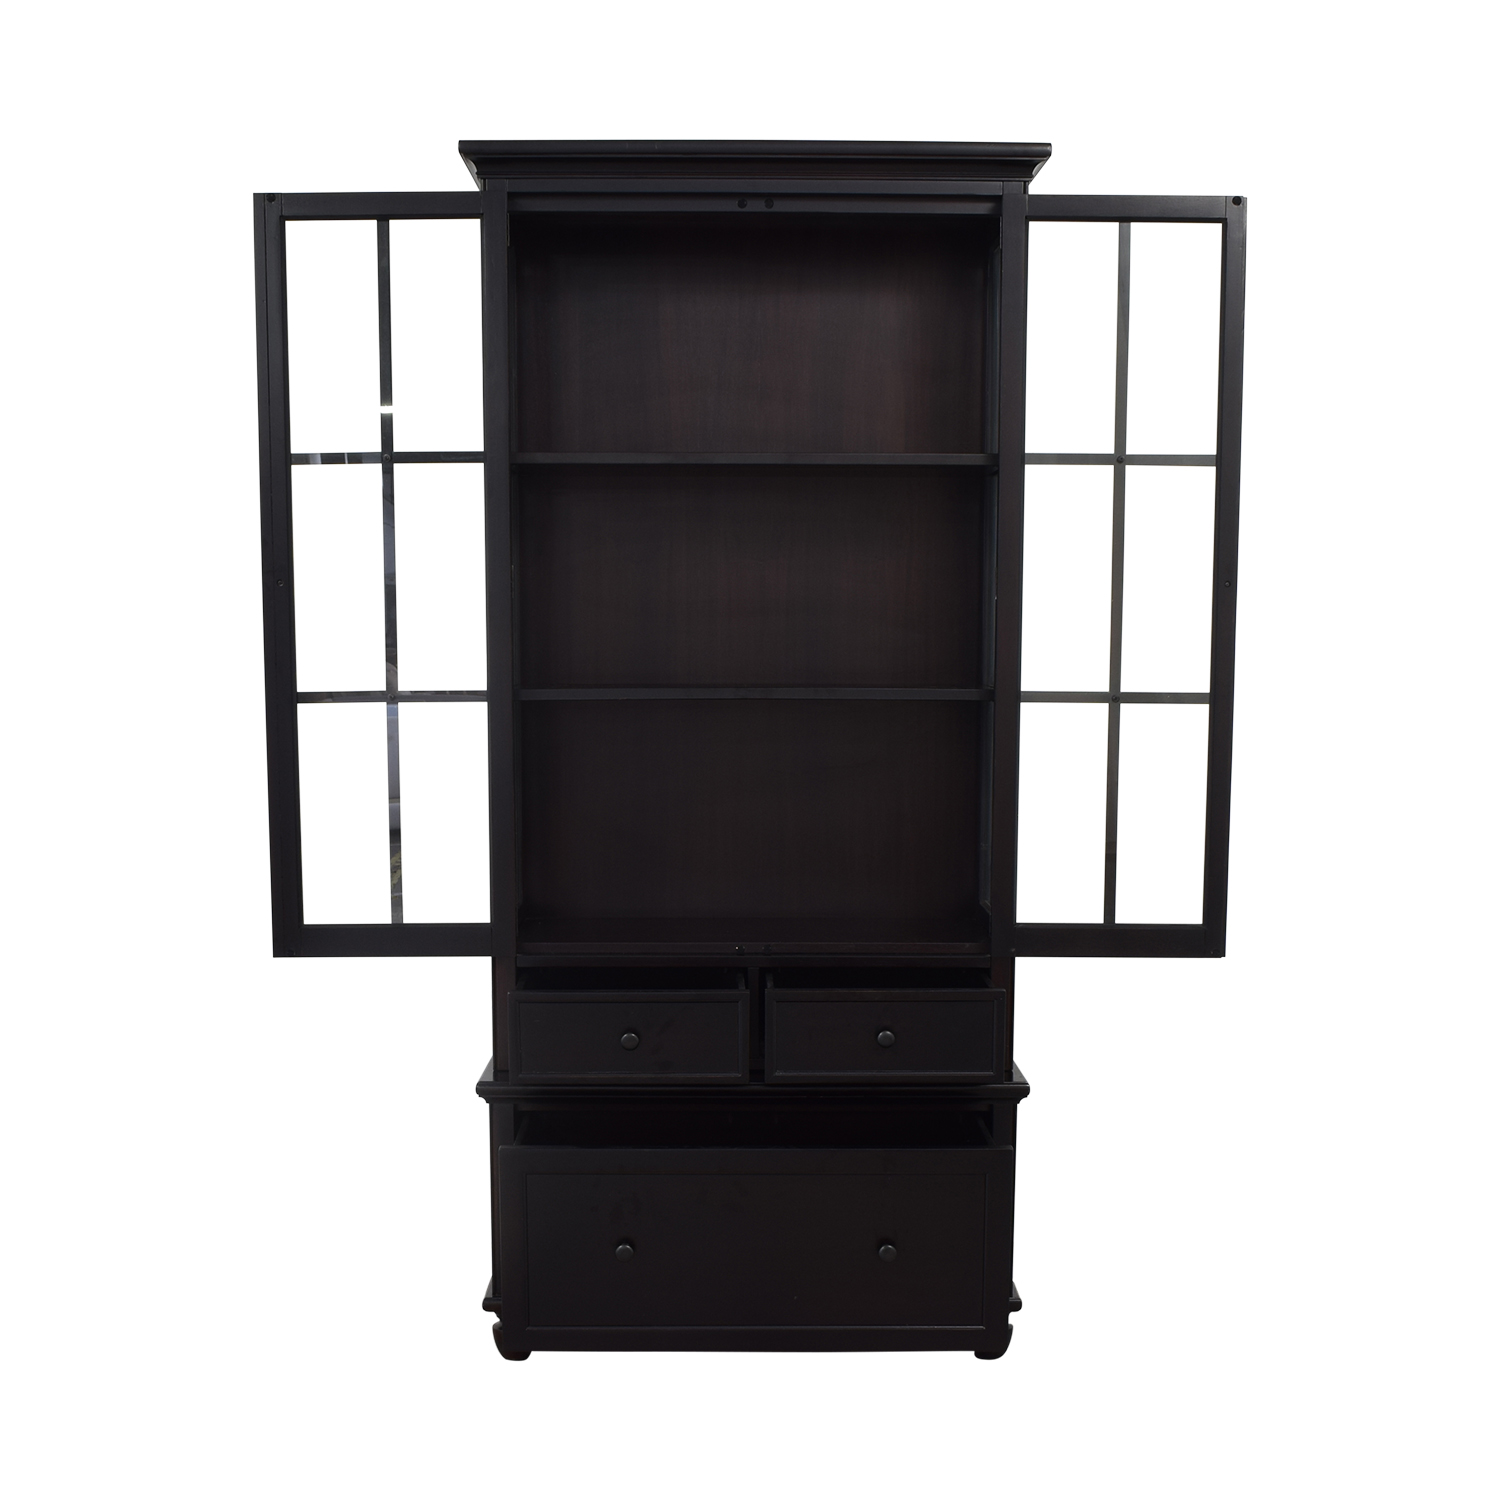 Crate & Barrel Crate & Barrel Storage Bookcase with Shelves coupon